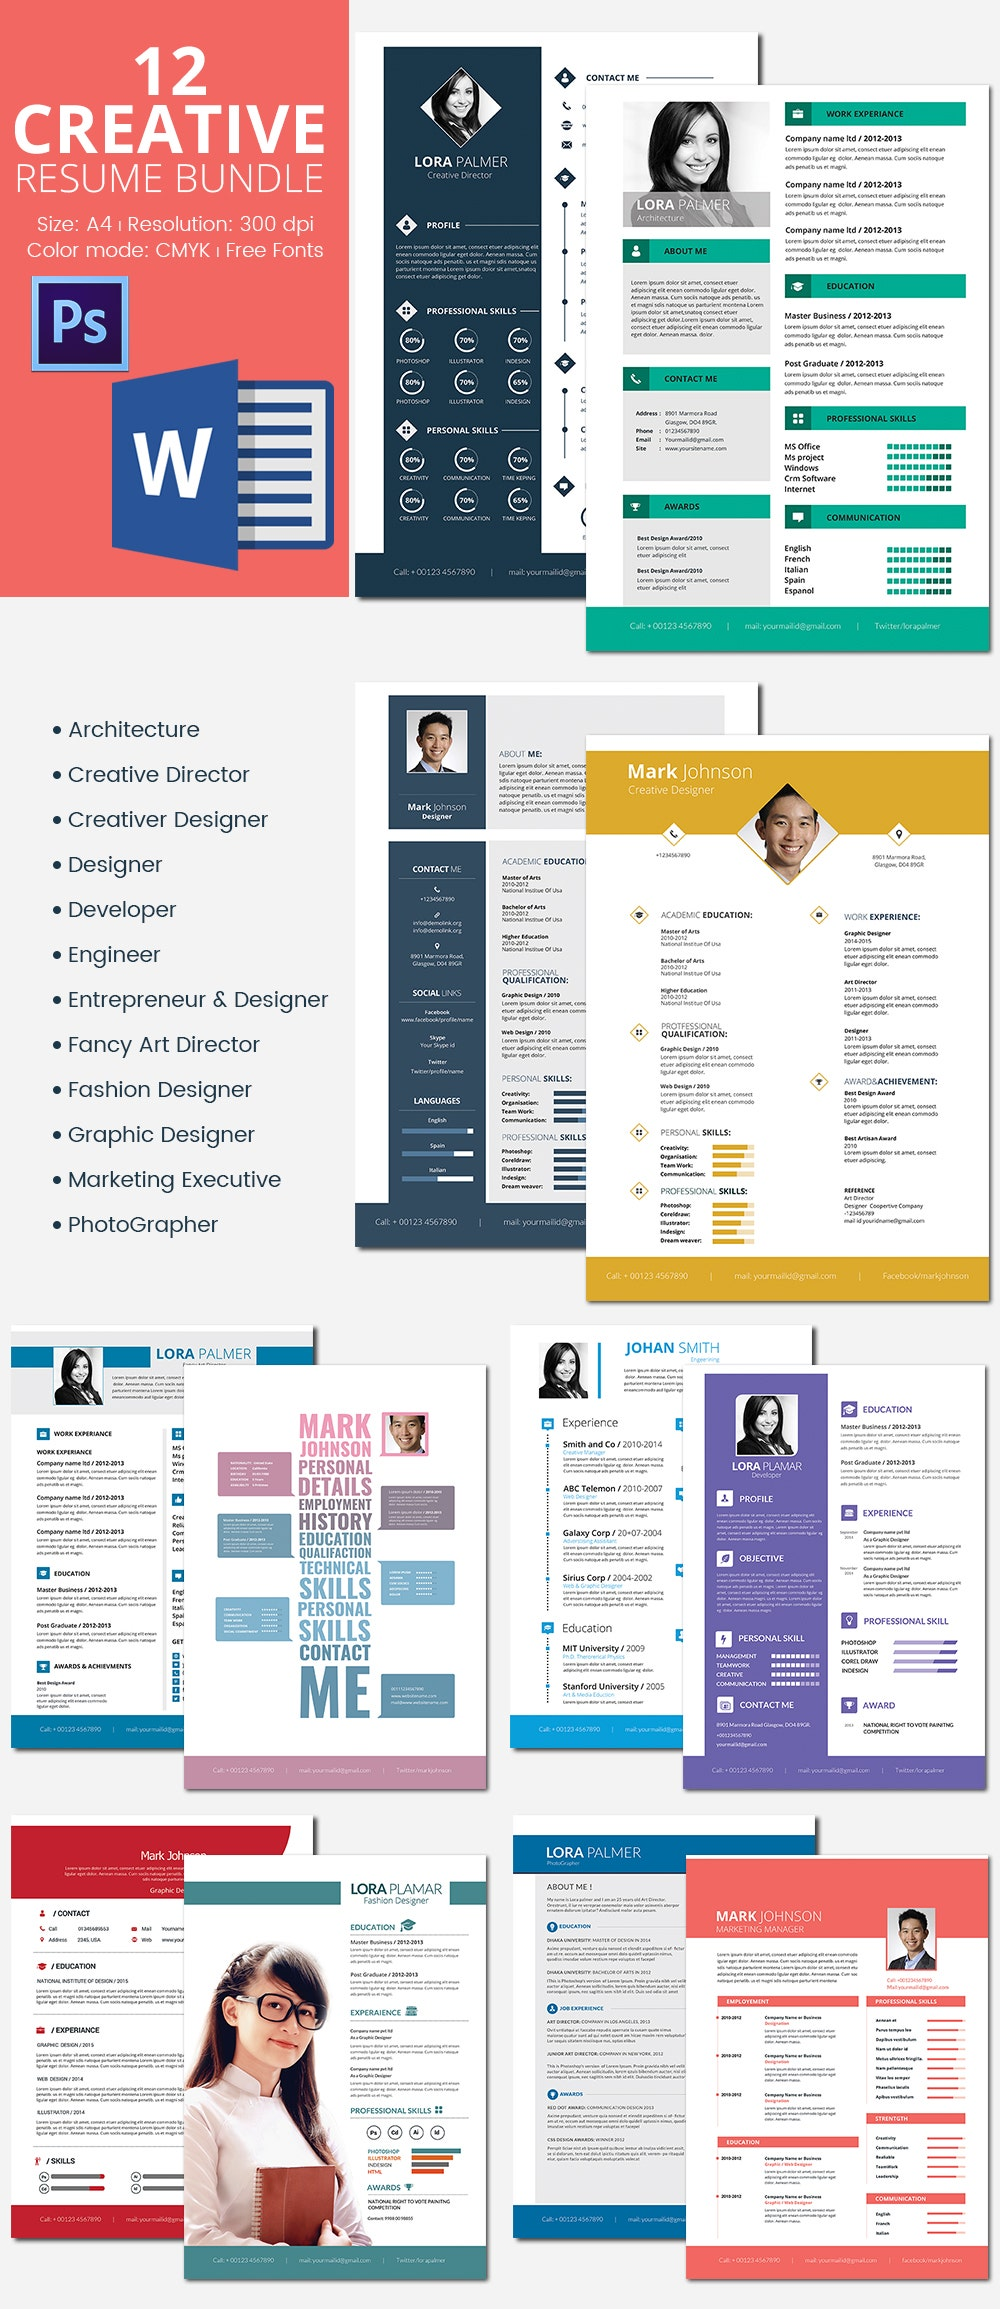 project manager resume template 8 word excel pdf format 12 creative resume bundle only for 25